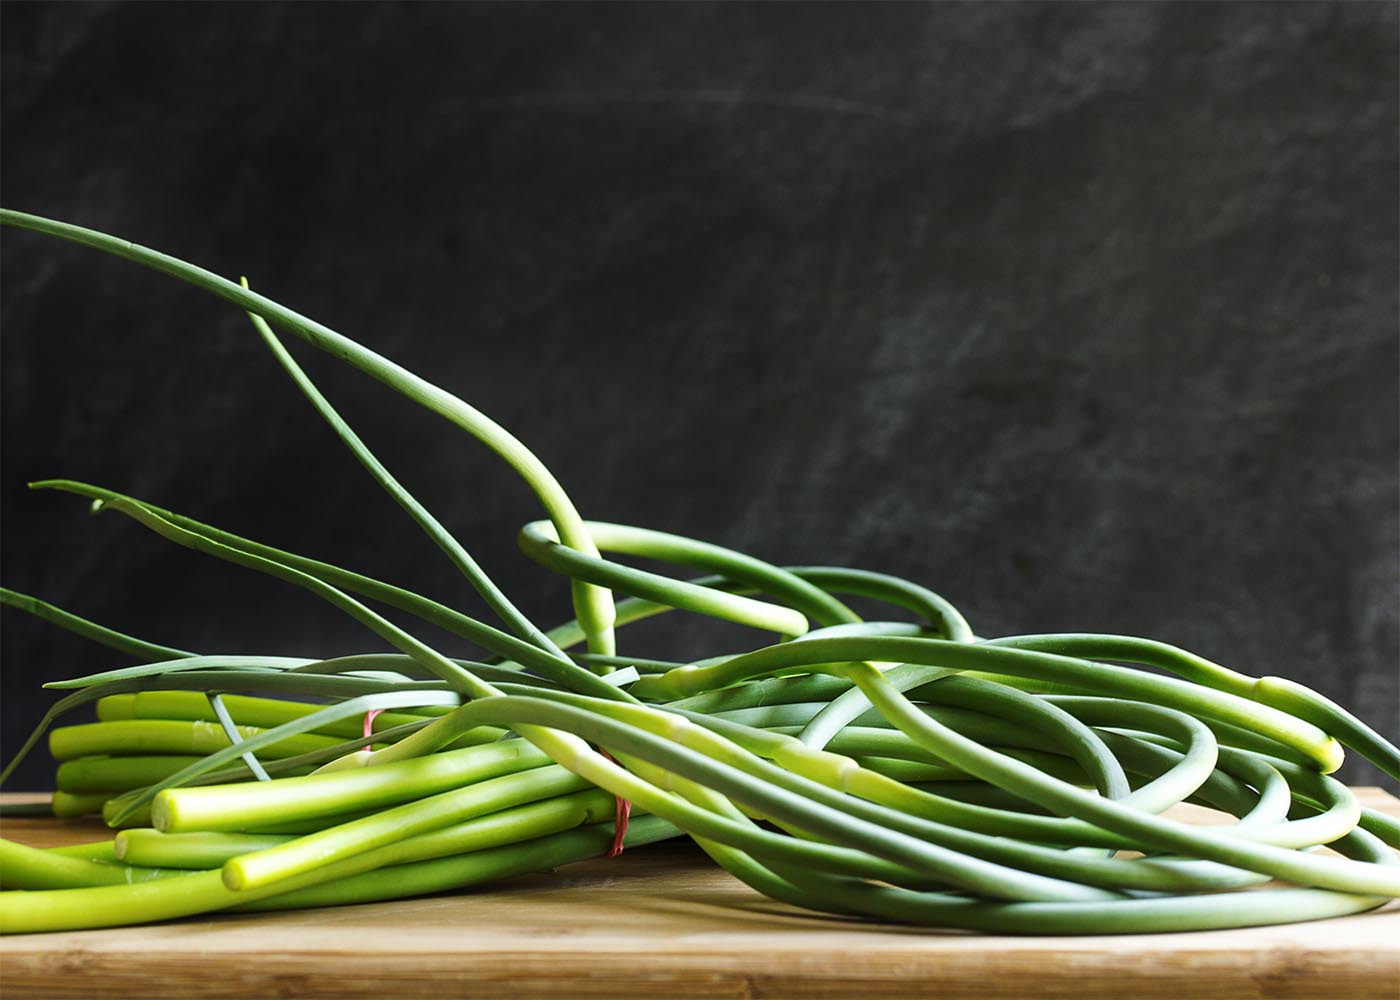 What are garlic scapes? How to use garlic scapes? How to cut and store garlic scapes? These questions and more answered in this ingredient spotlight. | justalittlebitofbacon.com